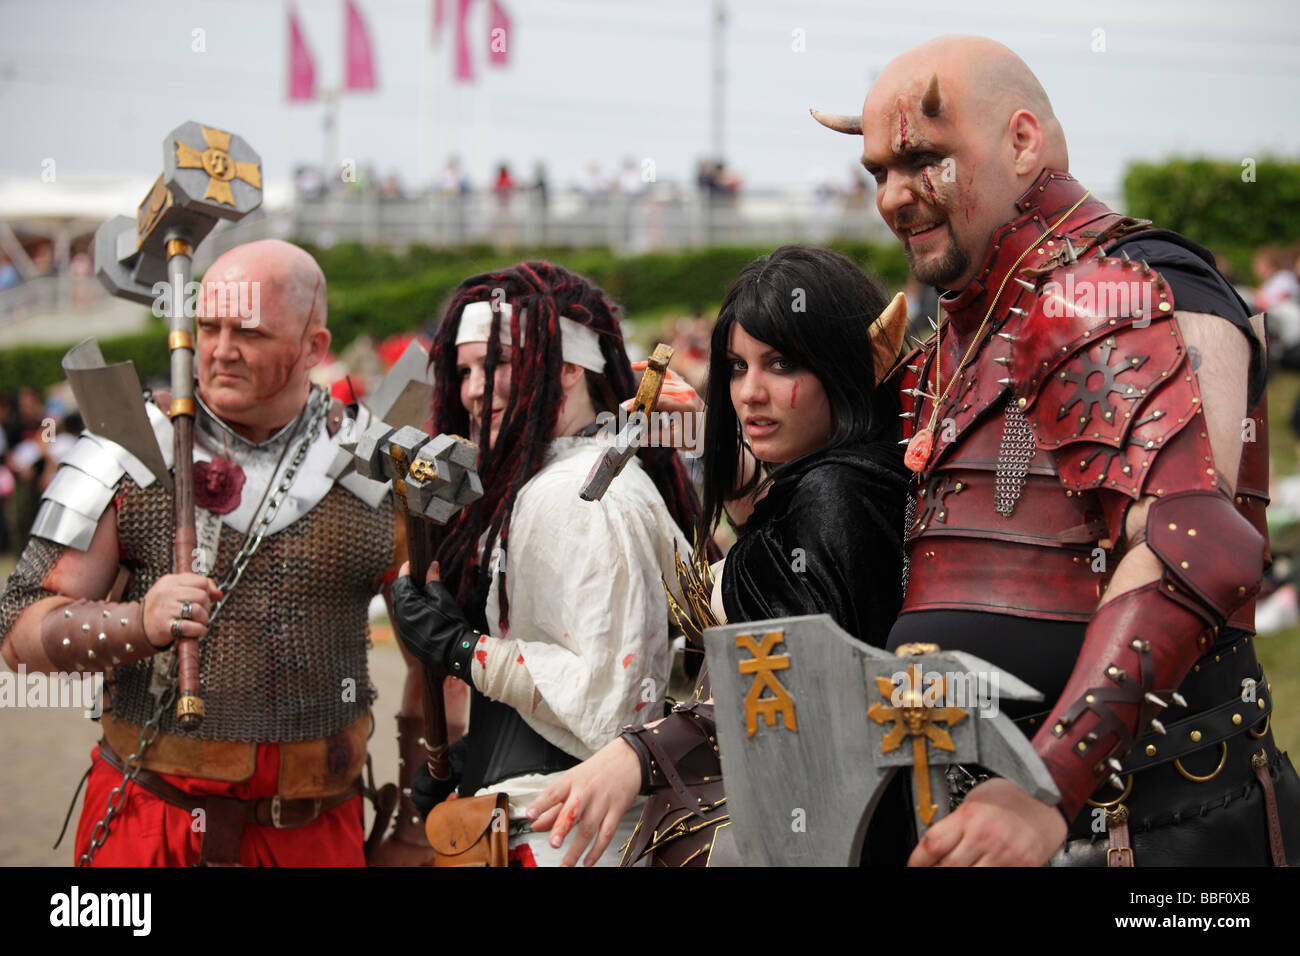 Cosplay fans 21 at Anime Expo, Excel Centre London 2009 - Stock Image